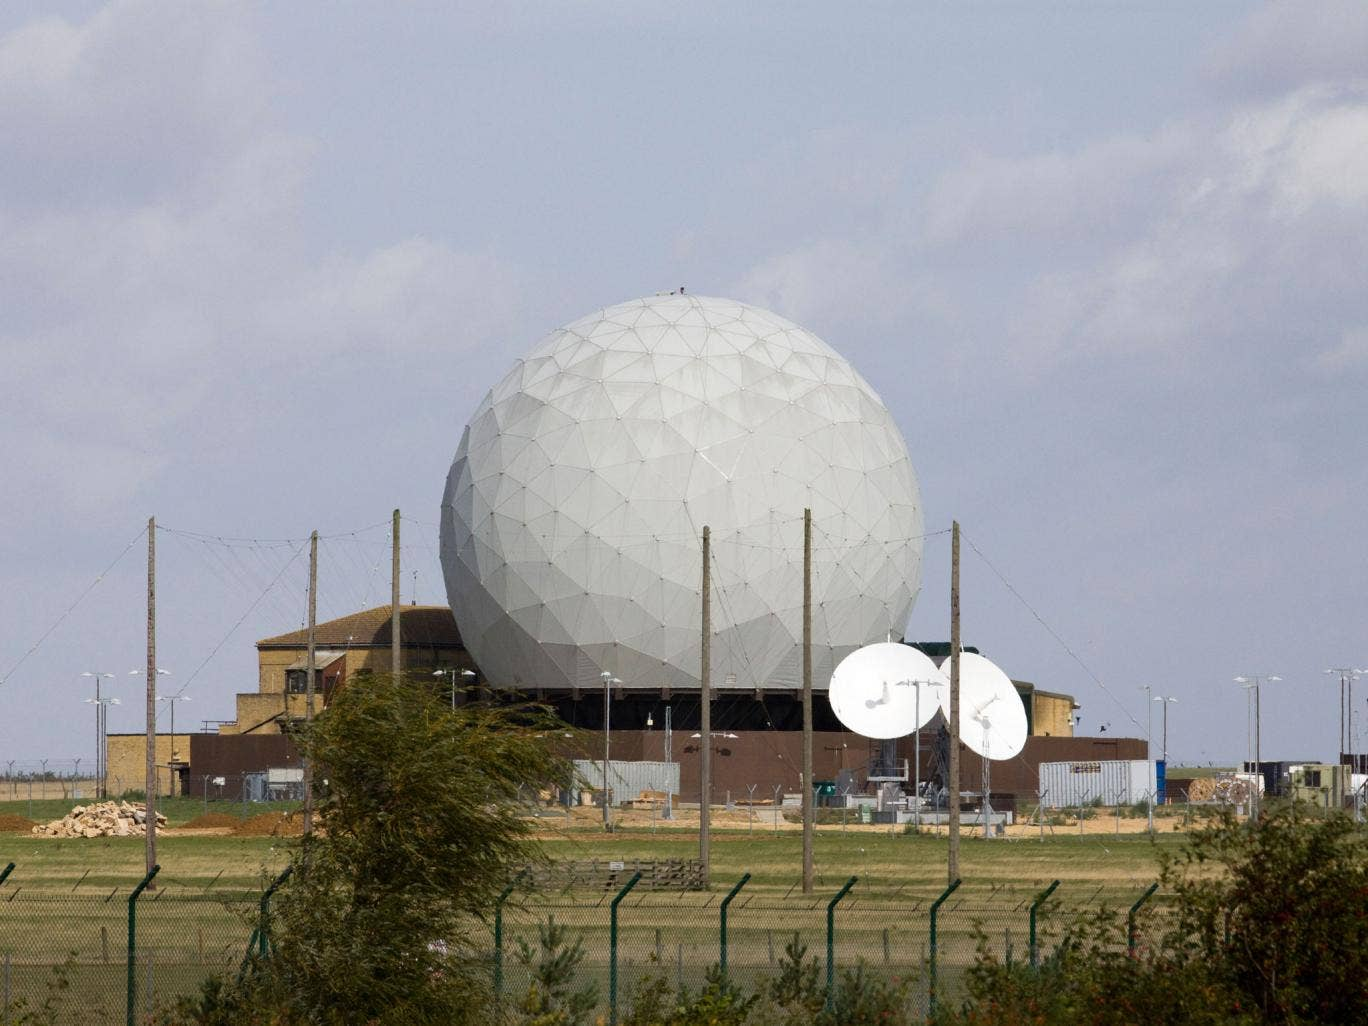 RAF Croughton is a relay base for listening stations